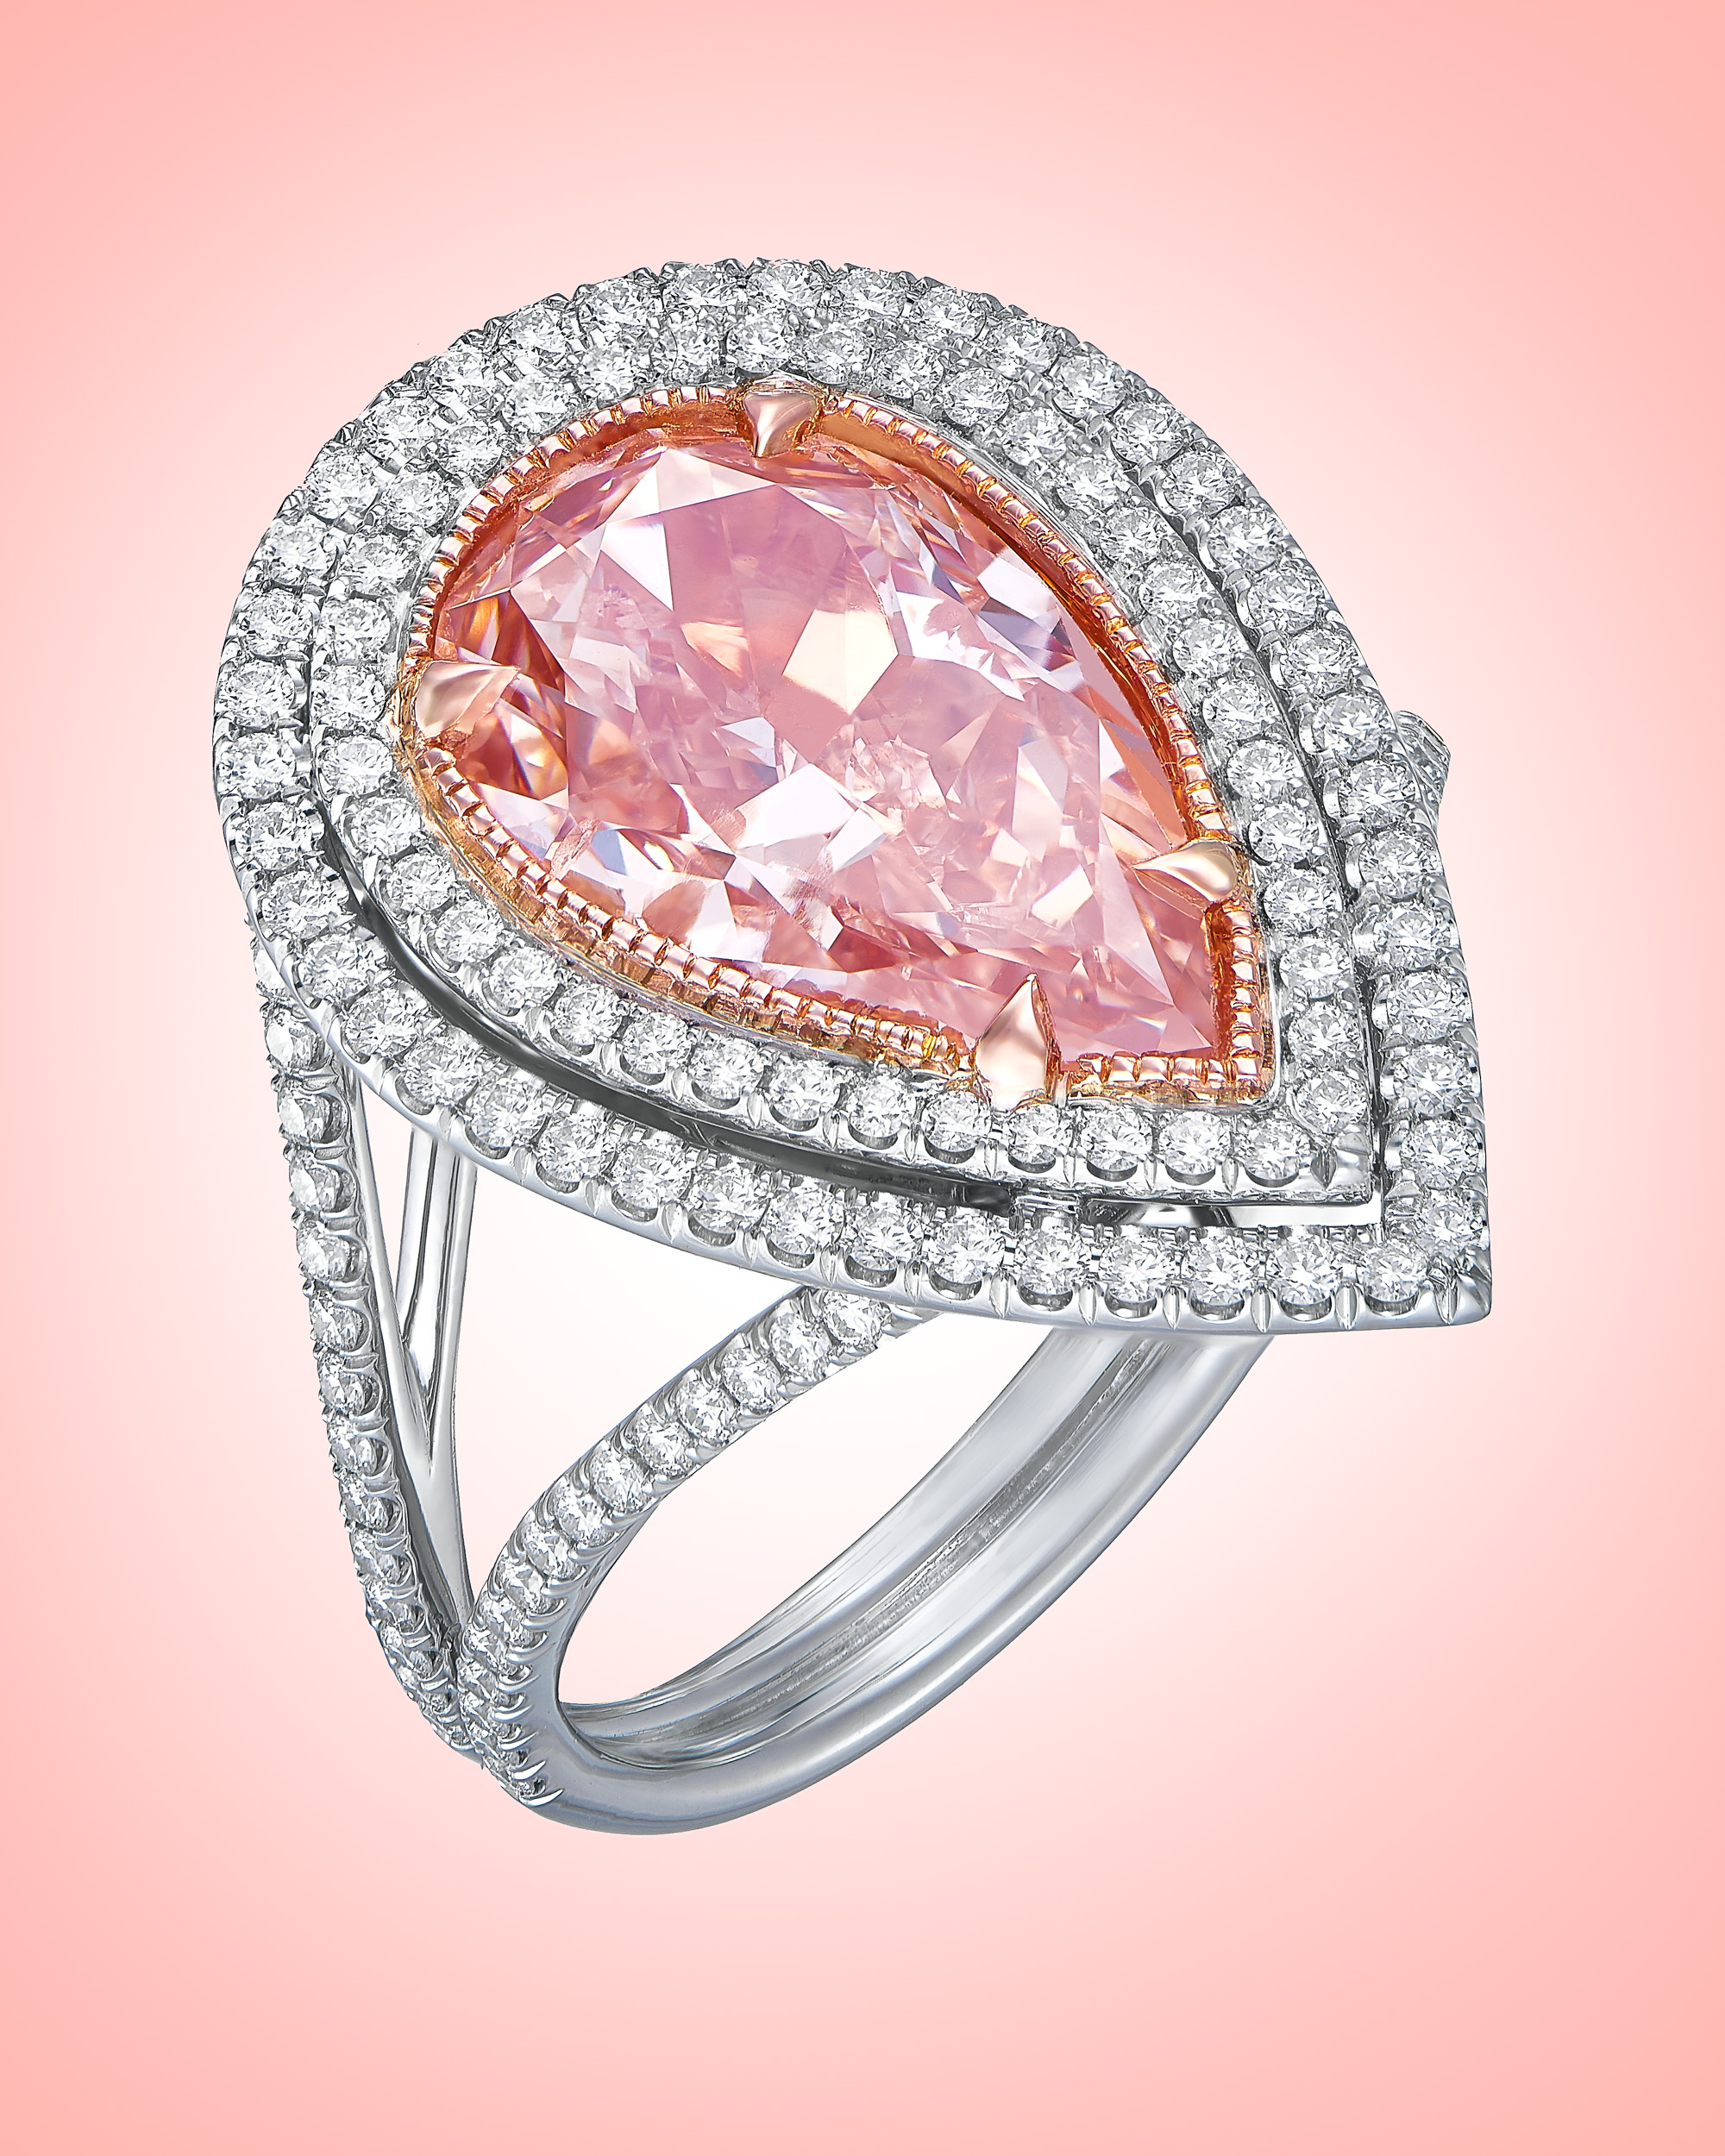 PinkDiamond_Ring.jpg